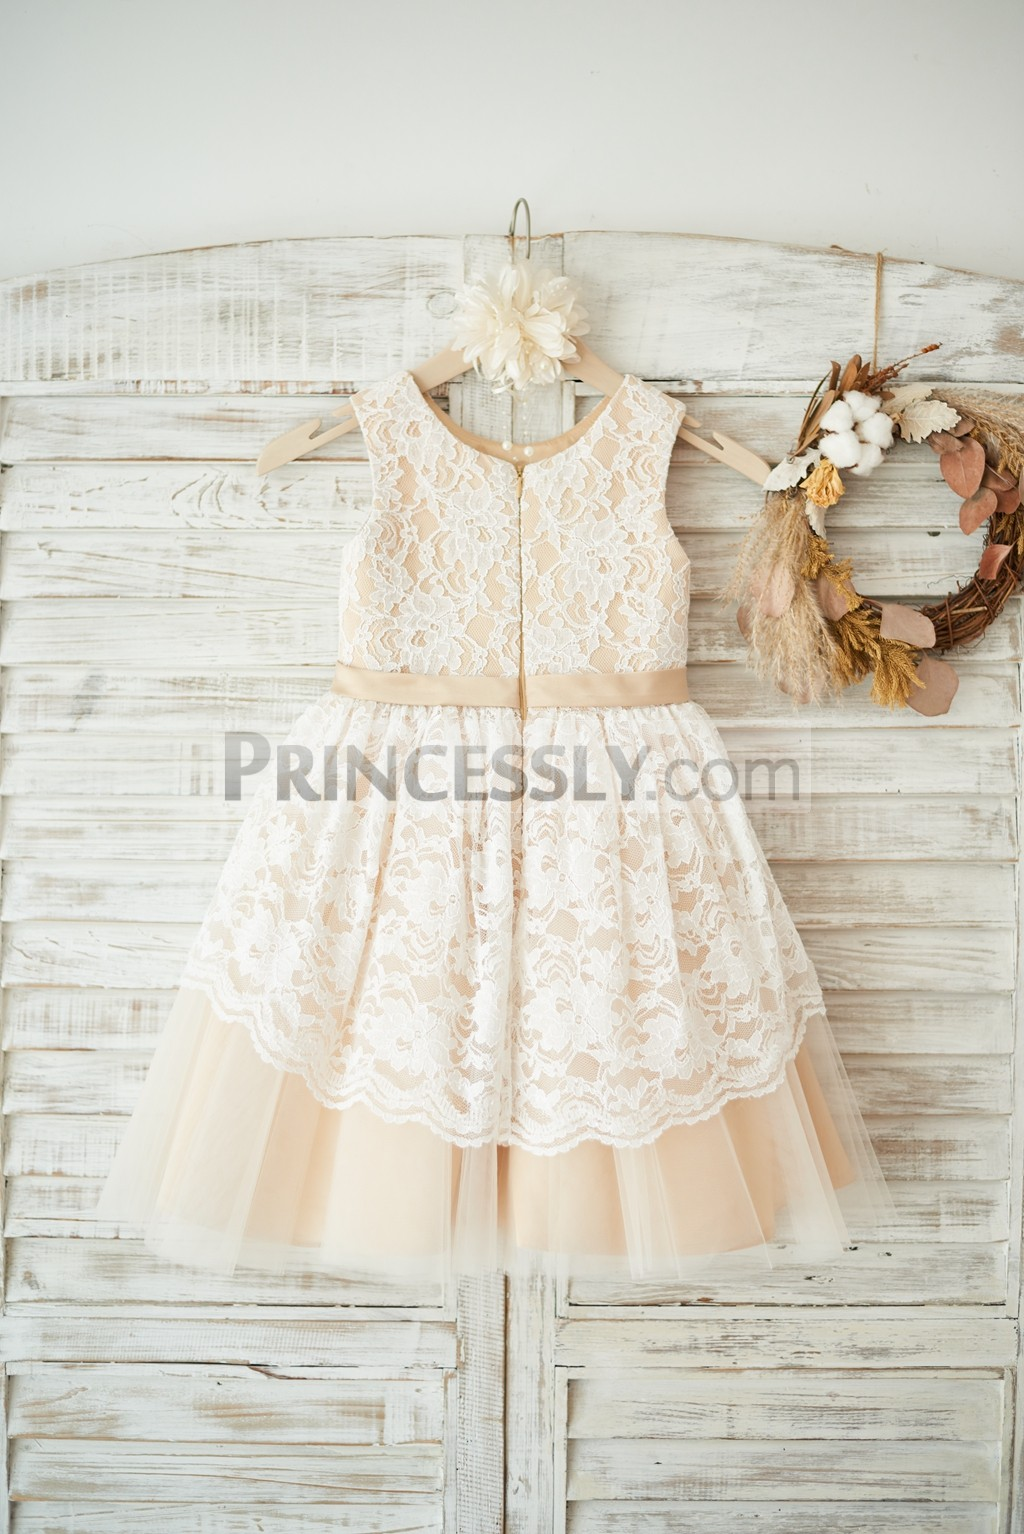 Lace tulle overlaid wedding flower girl dress